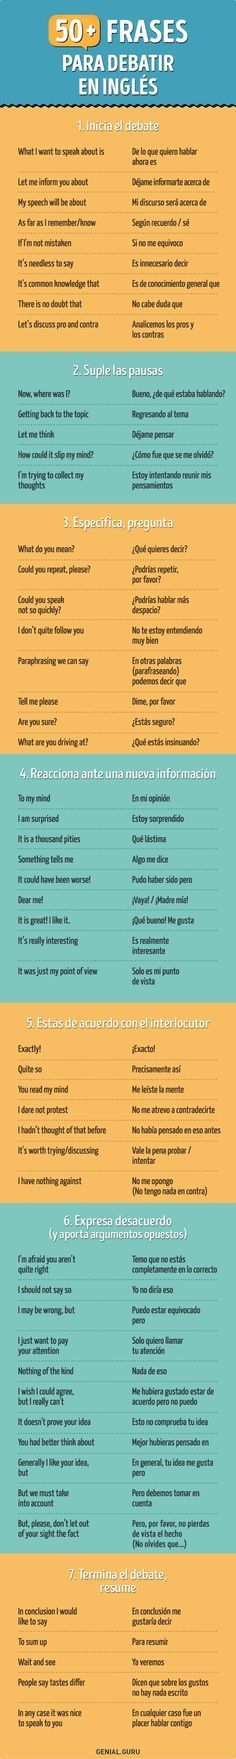 Como Se Dice Bathroom Stalls En Ingles 17 best images about espaÑol - vocabulario on pinterest | in